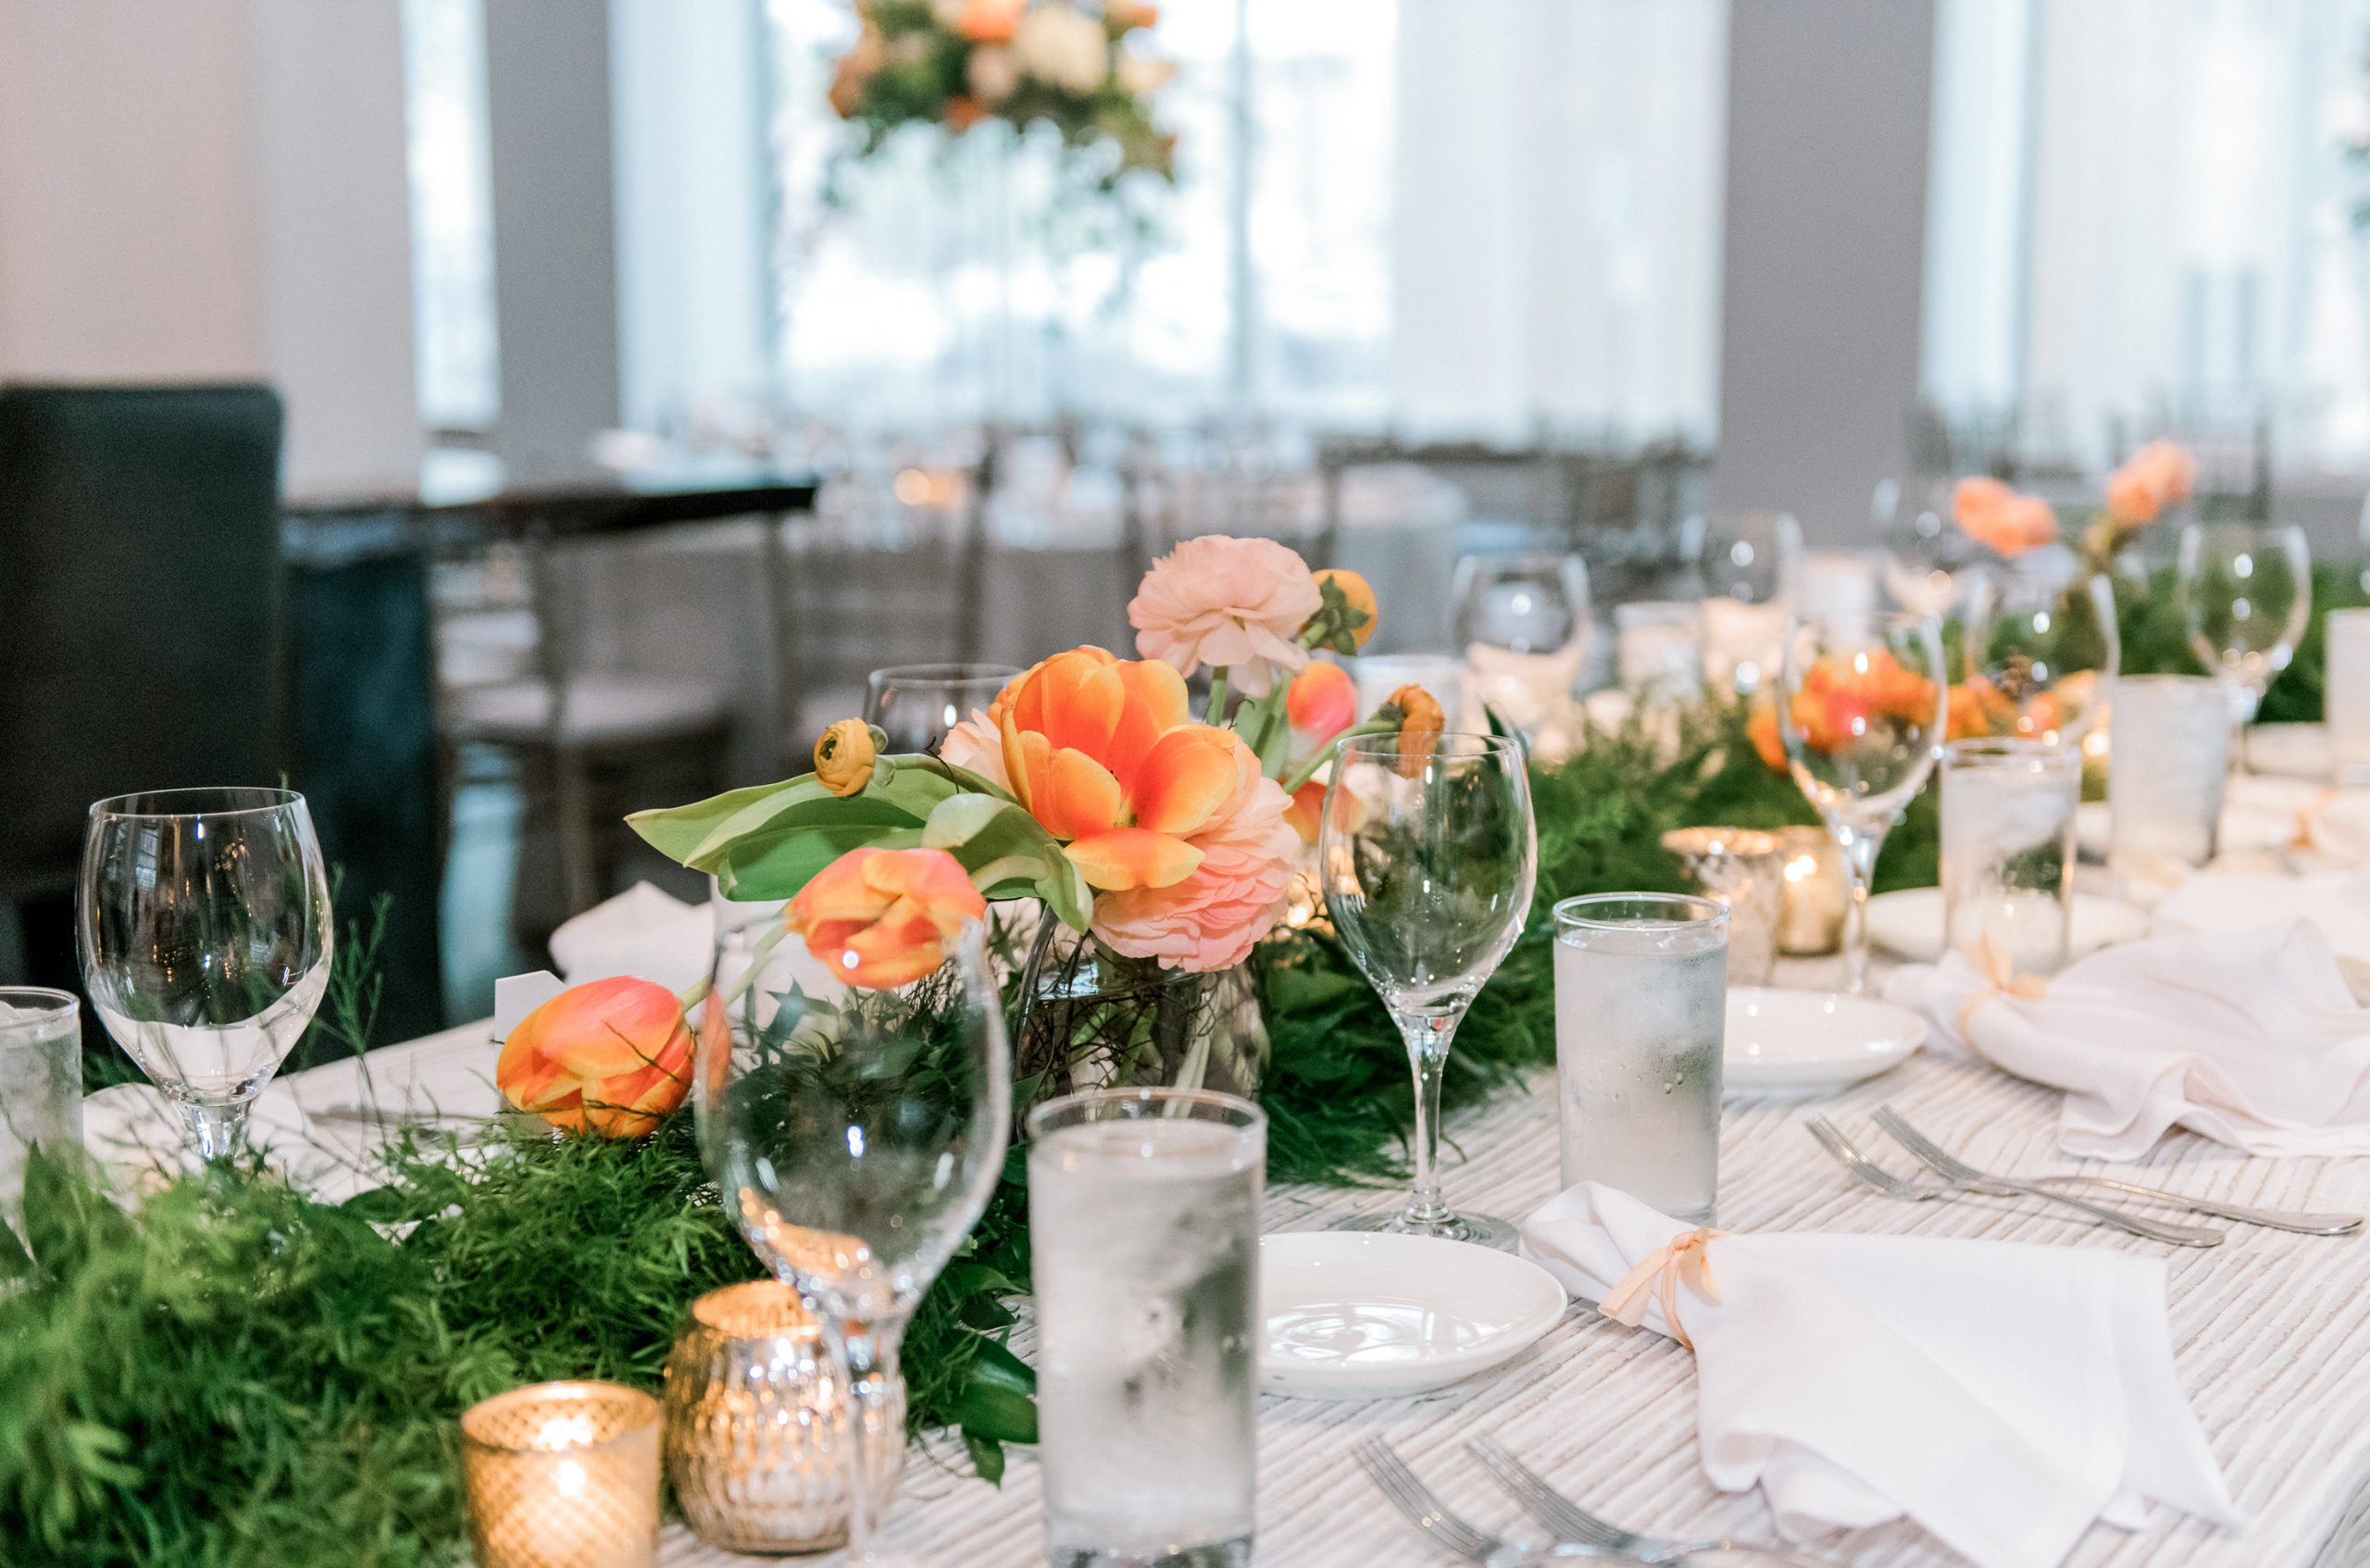 Lush green garland mixed with peach spring tulips and ranunculus flowers create low centerpiece tablescapes on wedding reception tables.